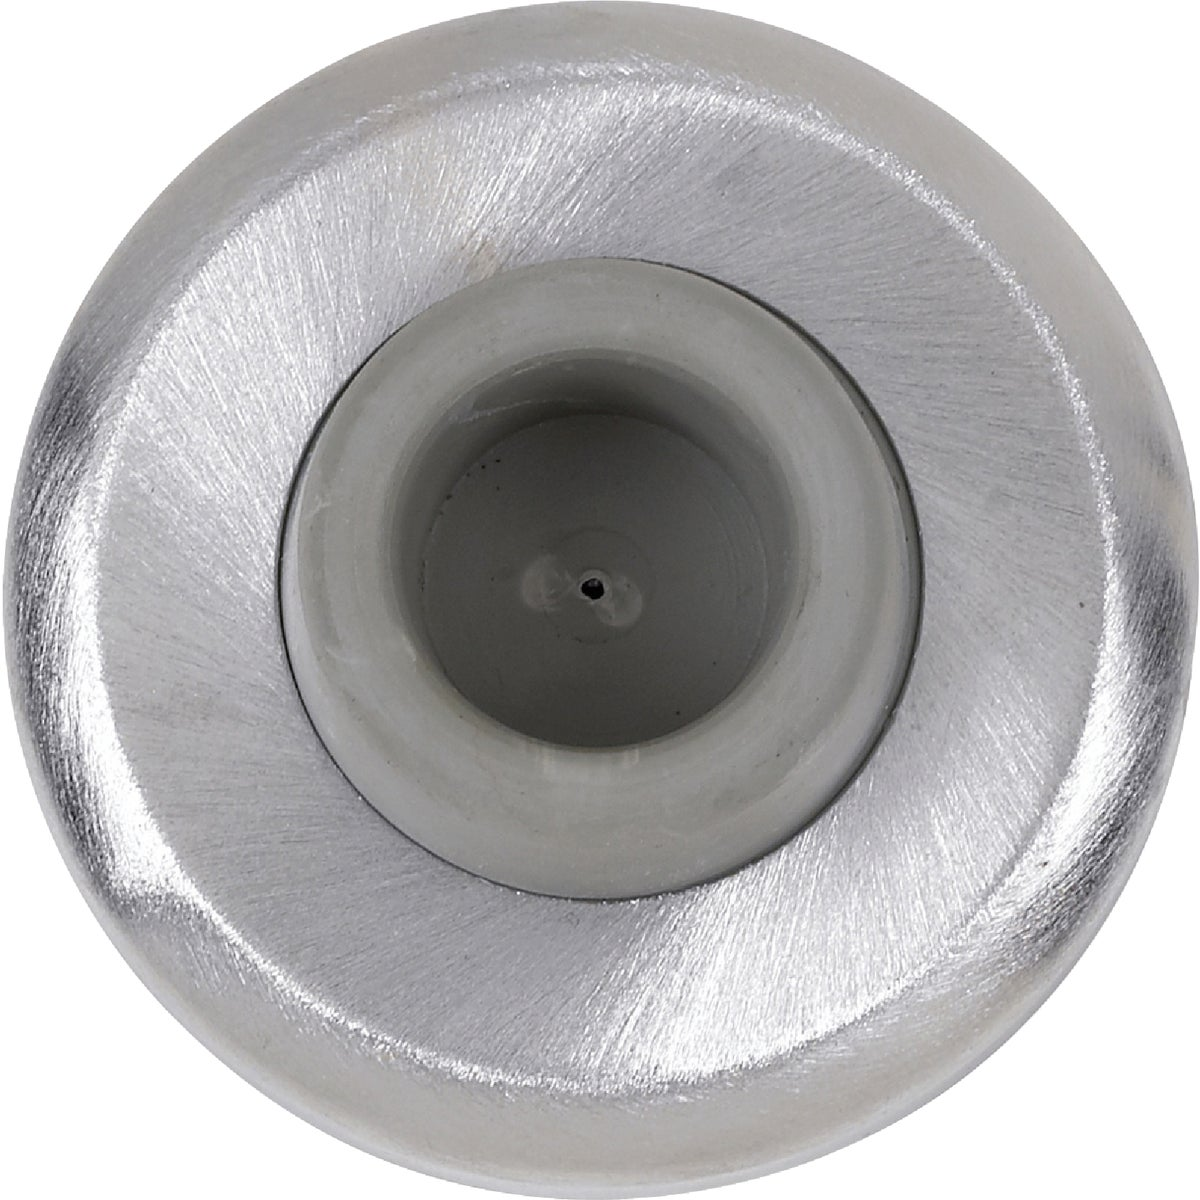 26D Concave Wall Stop